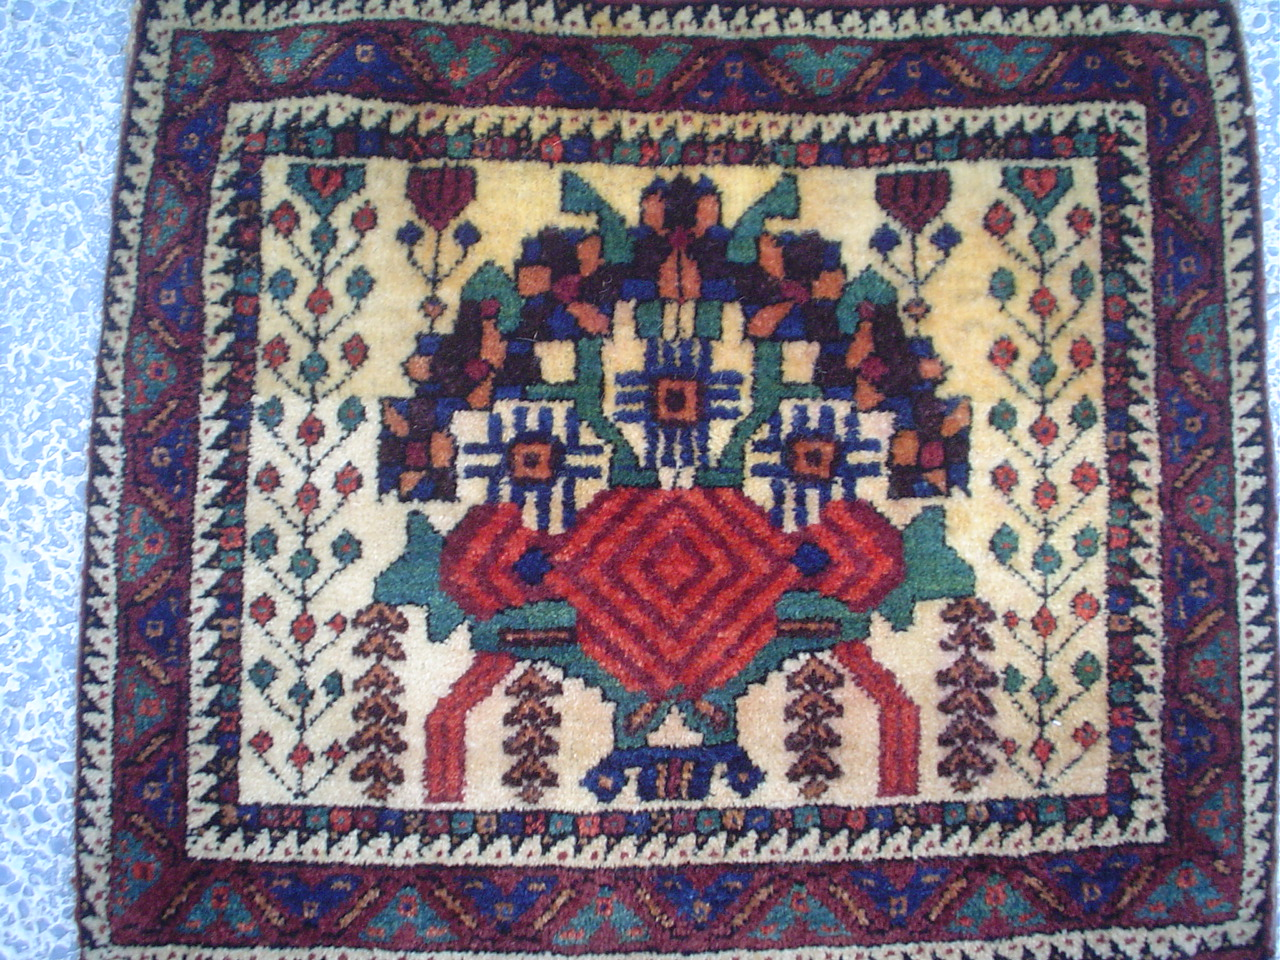 "#16a) Antique Afshar bag-face. 1'5"" x 1'5"" Early 20th C. Finely woven."